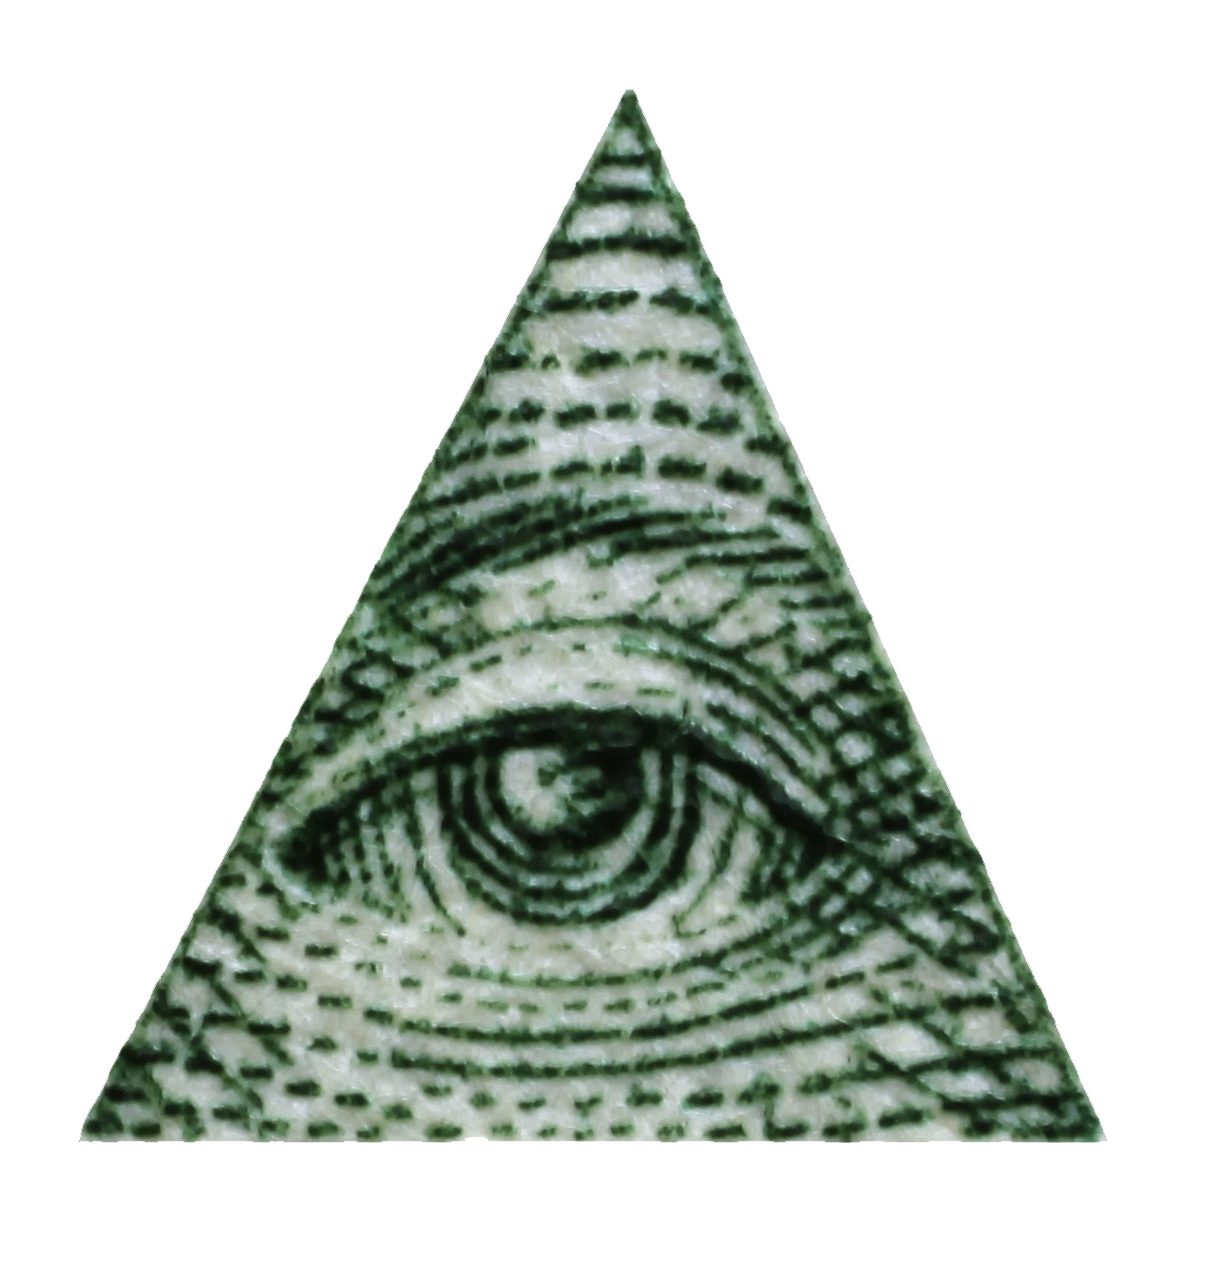 transparent pyramid all seeing eye